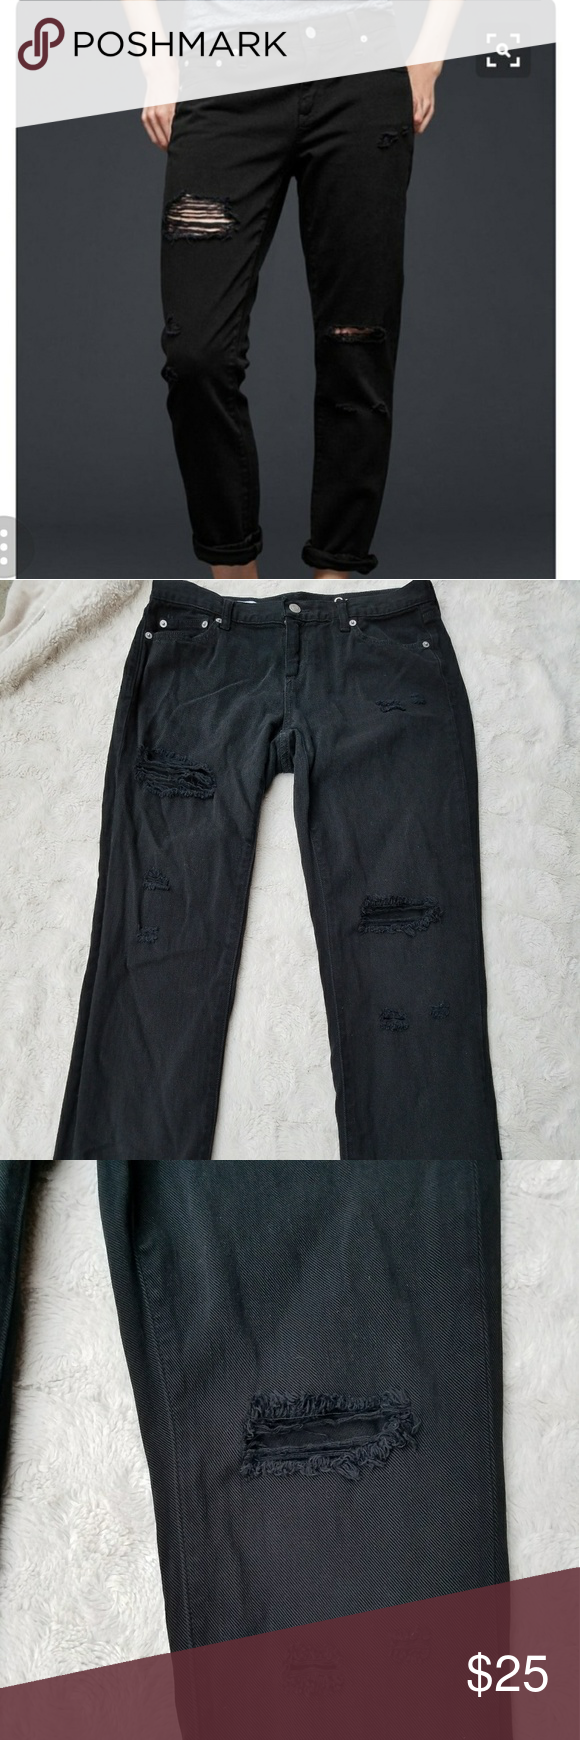 c689b92cf31 1969 Gap girlfriend jeans black distressed destroy washed once excellent  condition. true to size lightly loose fit very comfortable. please ask  questions ...